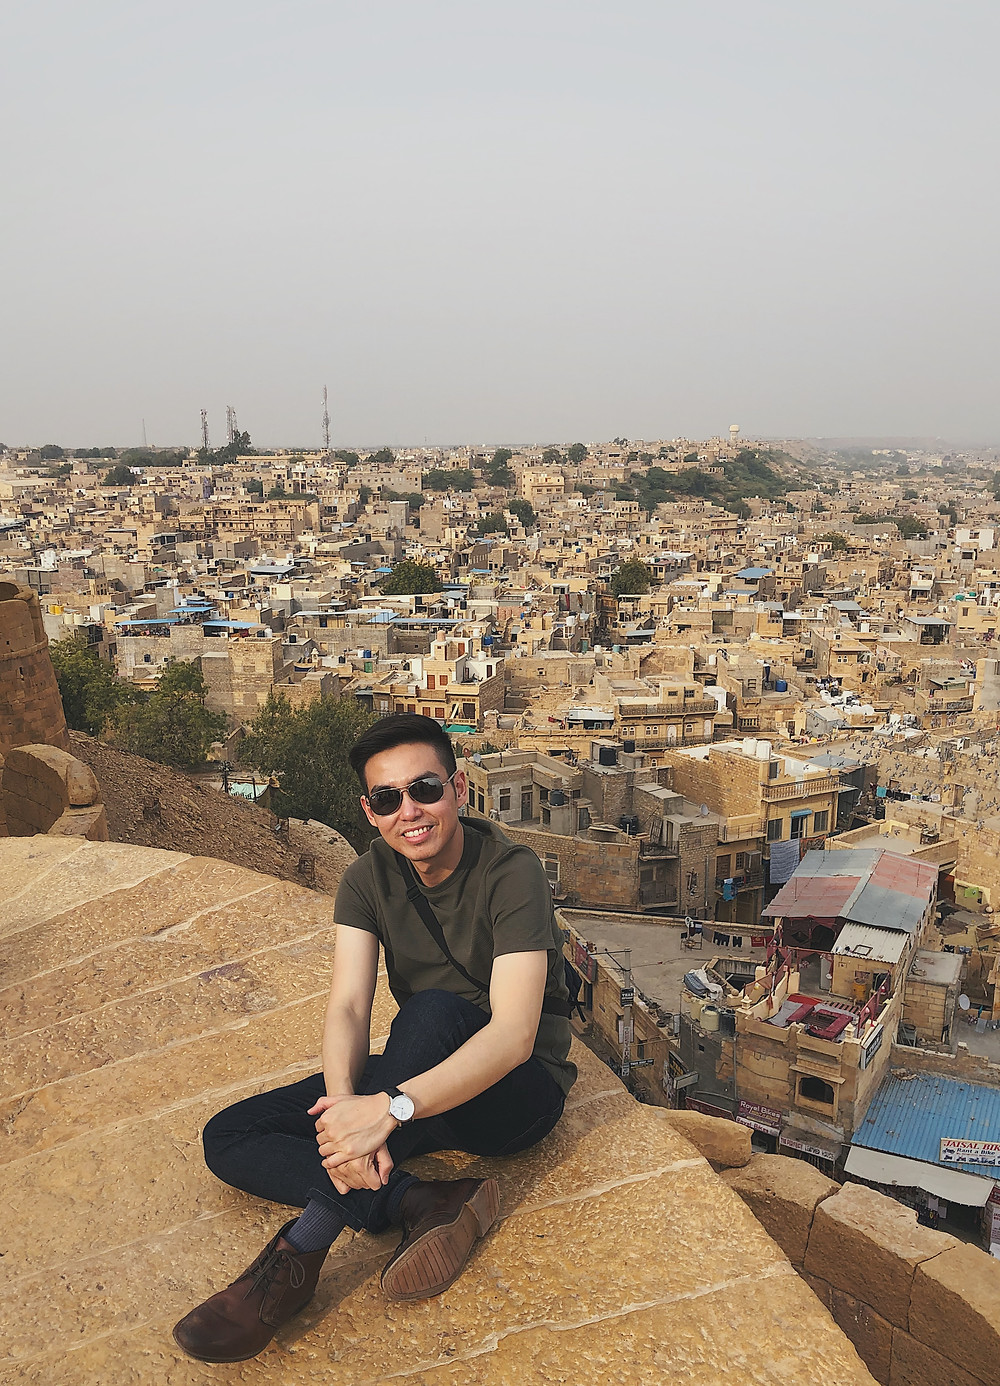 The Golden City of Jaisalmer as viewed from Jaisalmer Fort